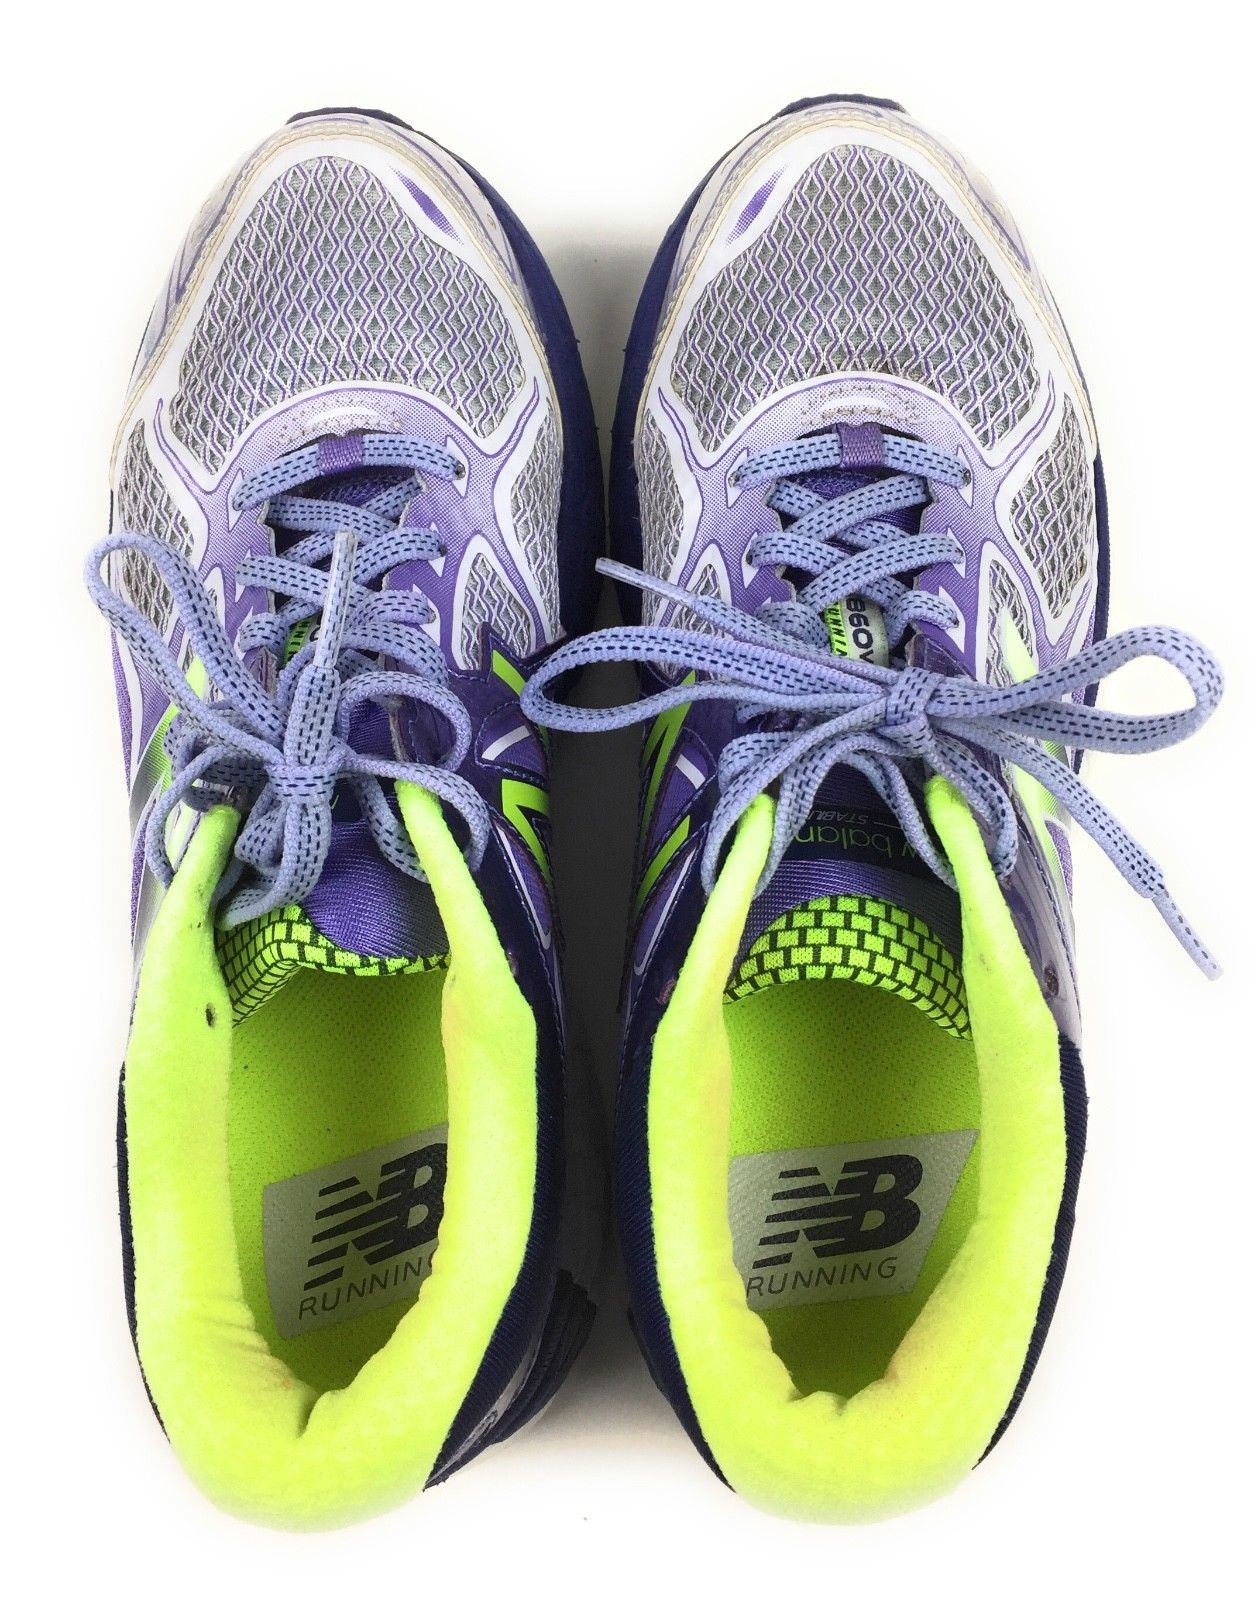 New Balance 860v6 Athletic Running Shoes W860GP8 Purple Green Women's Size 8 US image 2